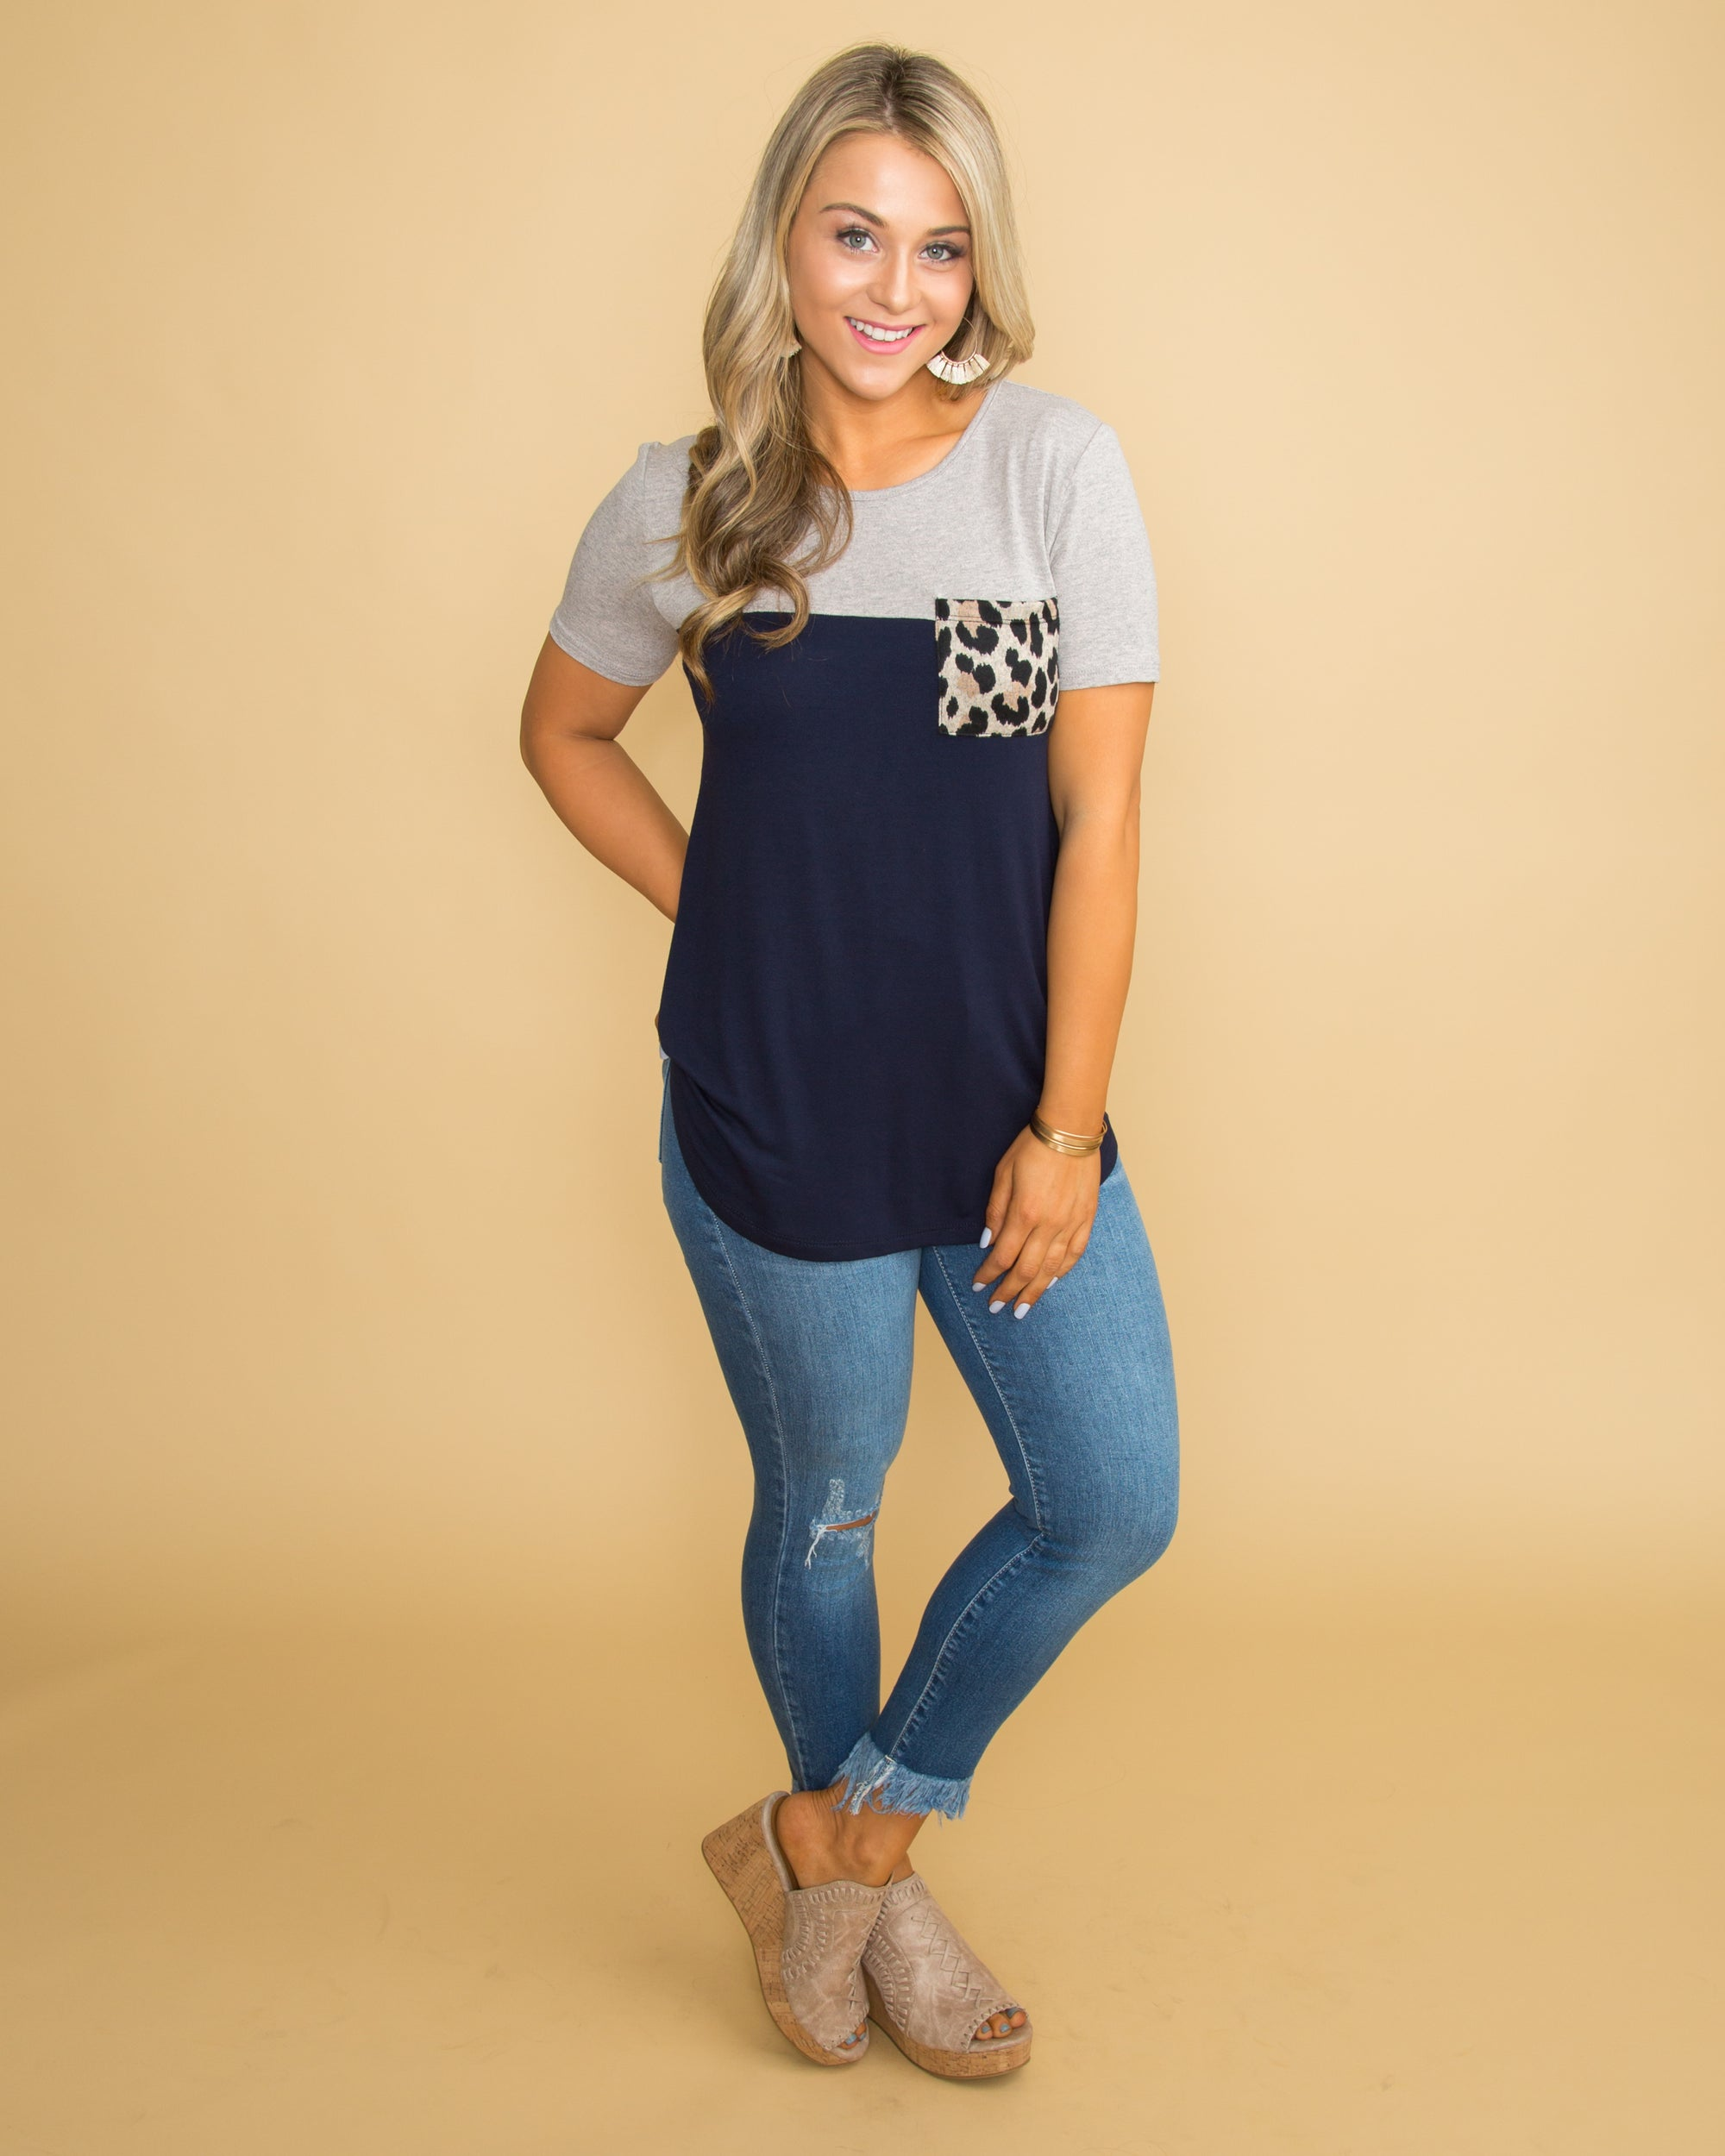 e8397ce0699 Casually Dreaming Color Block Leopard Top - Navy - Eleven Oaks Boutique